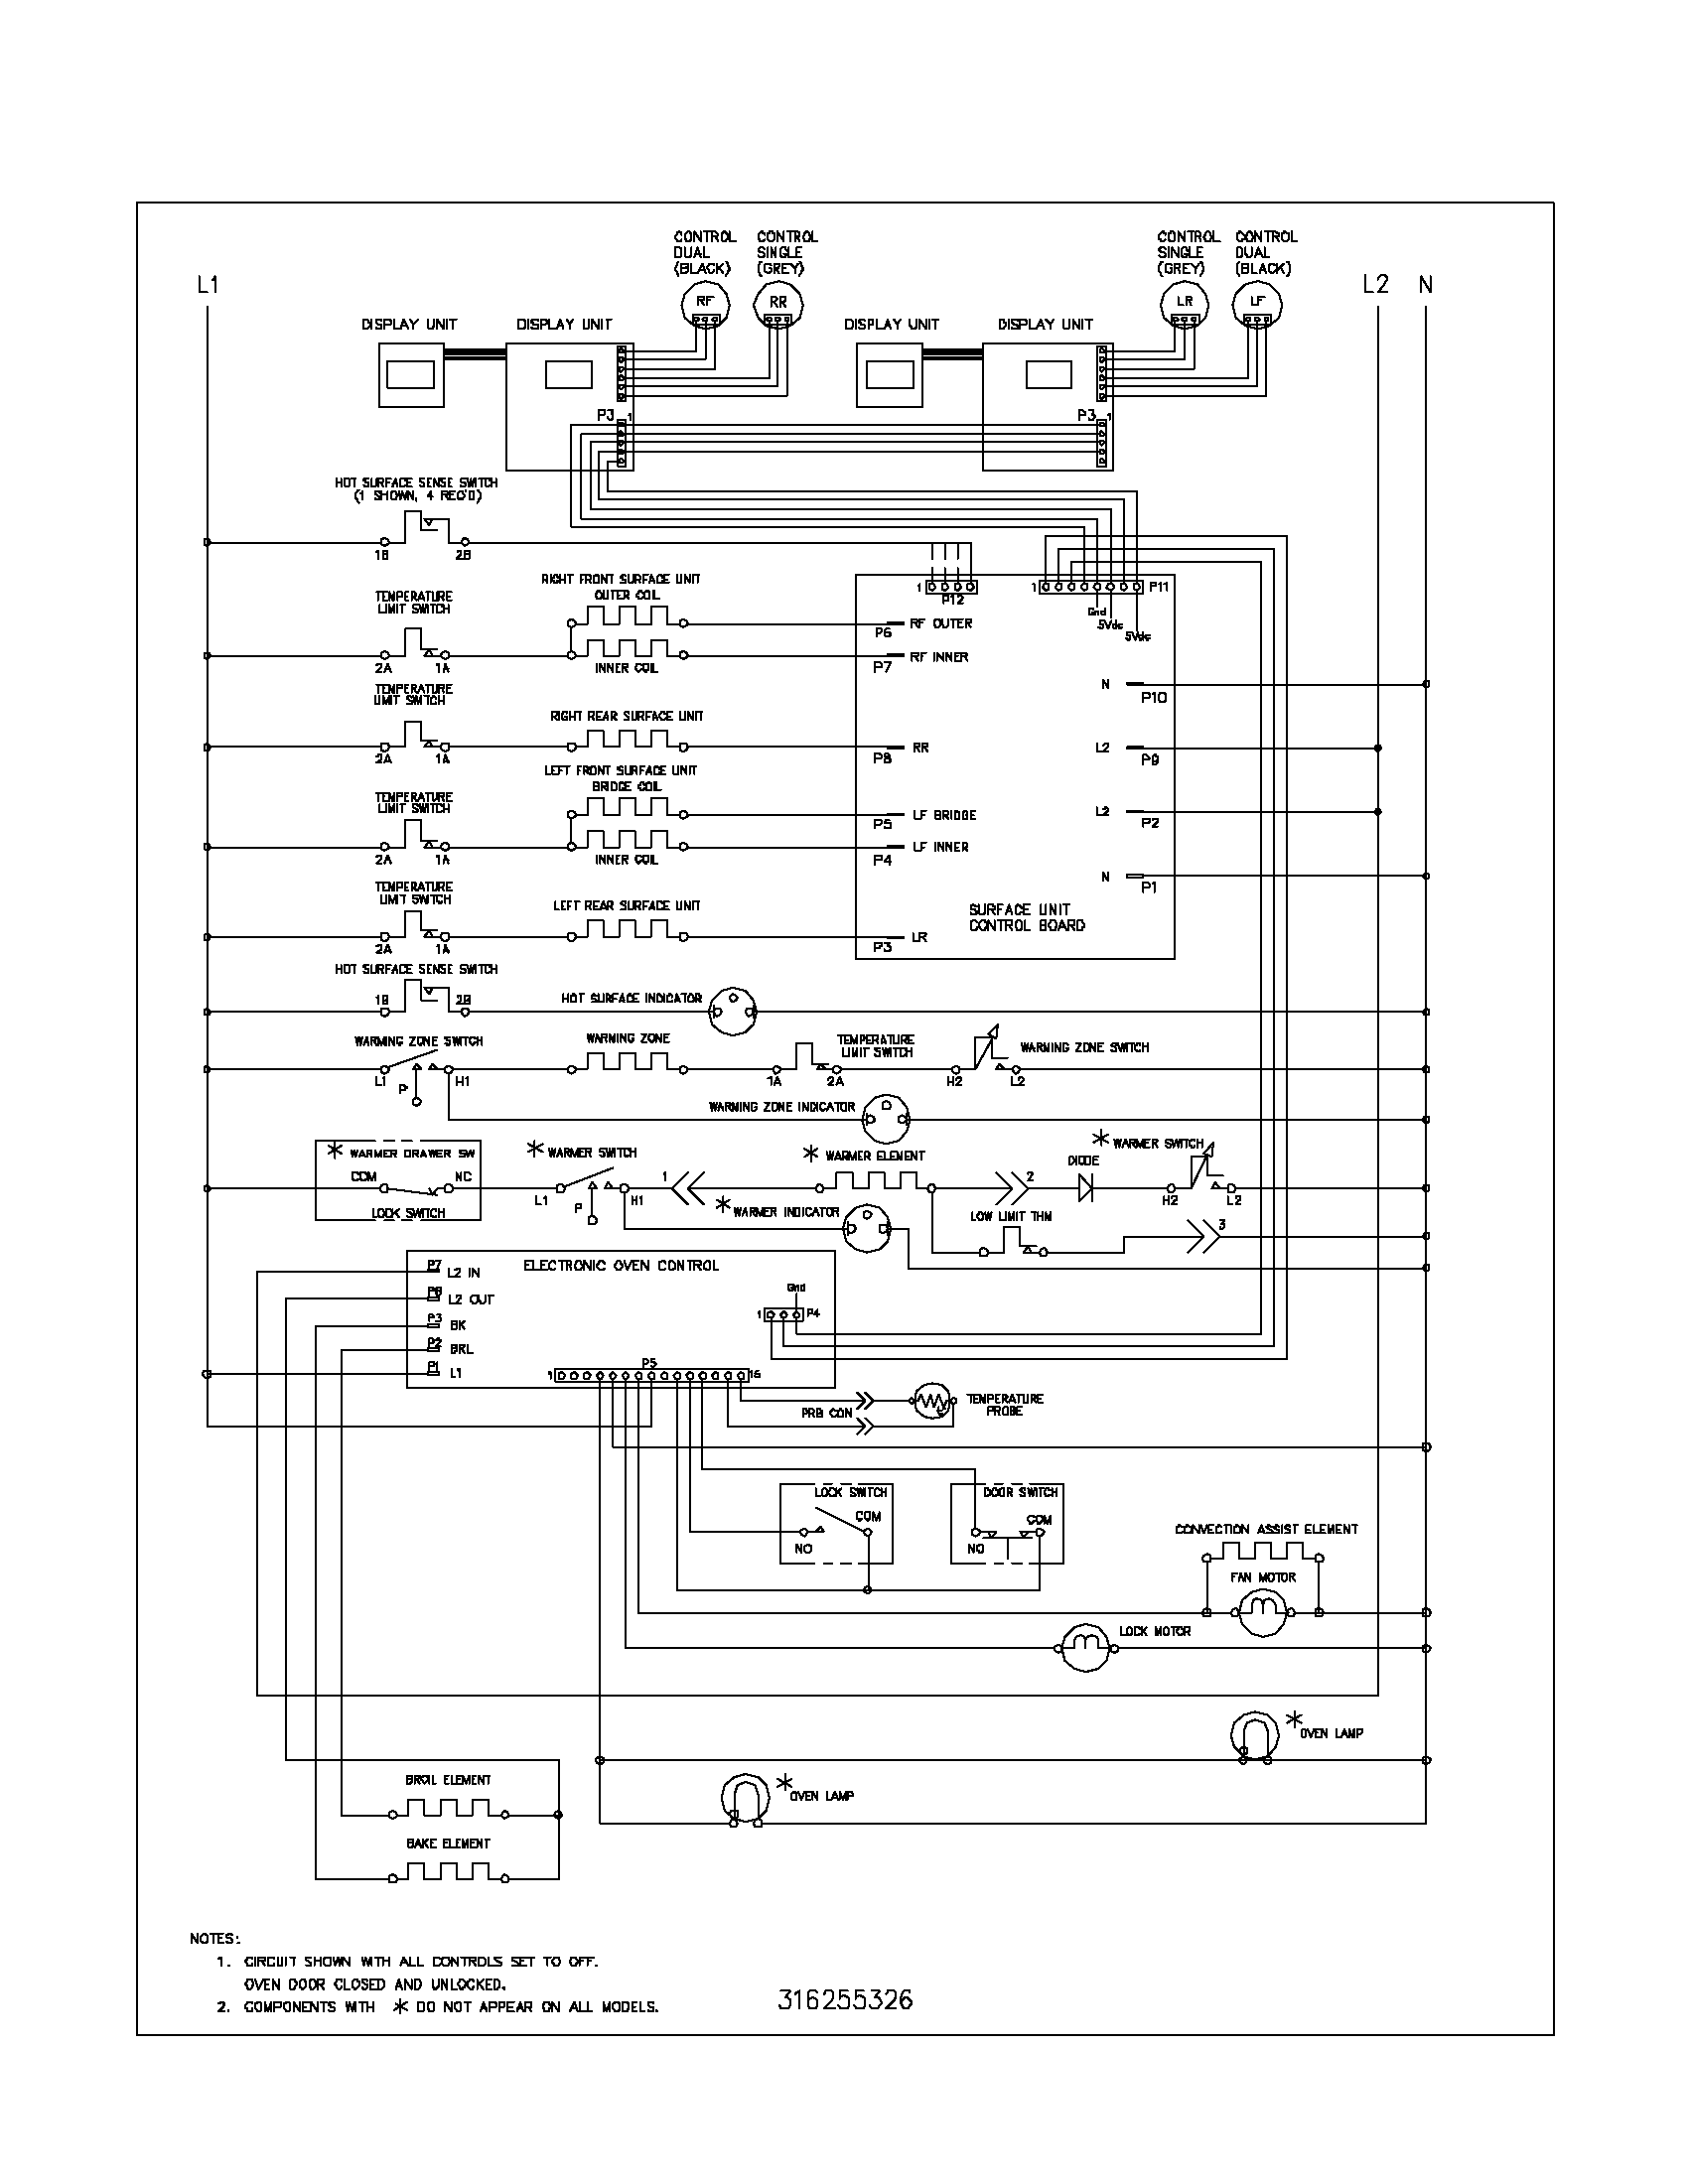 13C9B 6 Heat Stove Switch Wiring Diagram | Wiring ResourcesWiring Resources